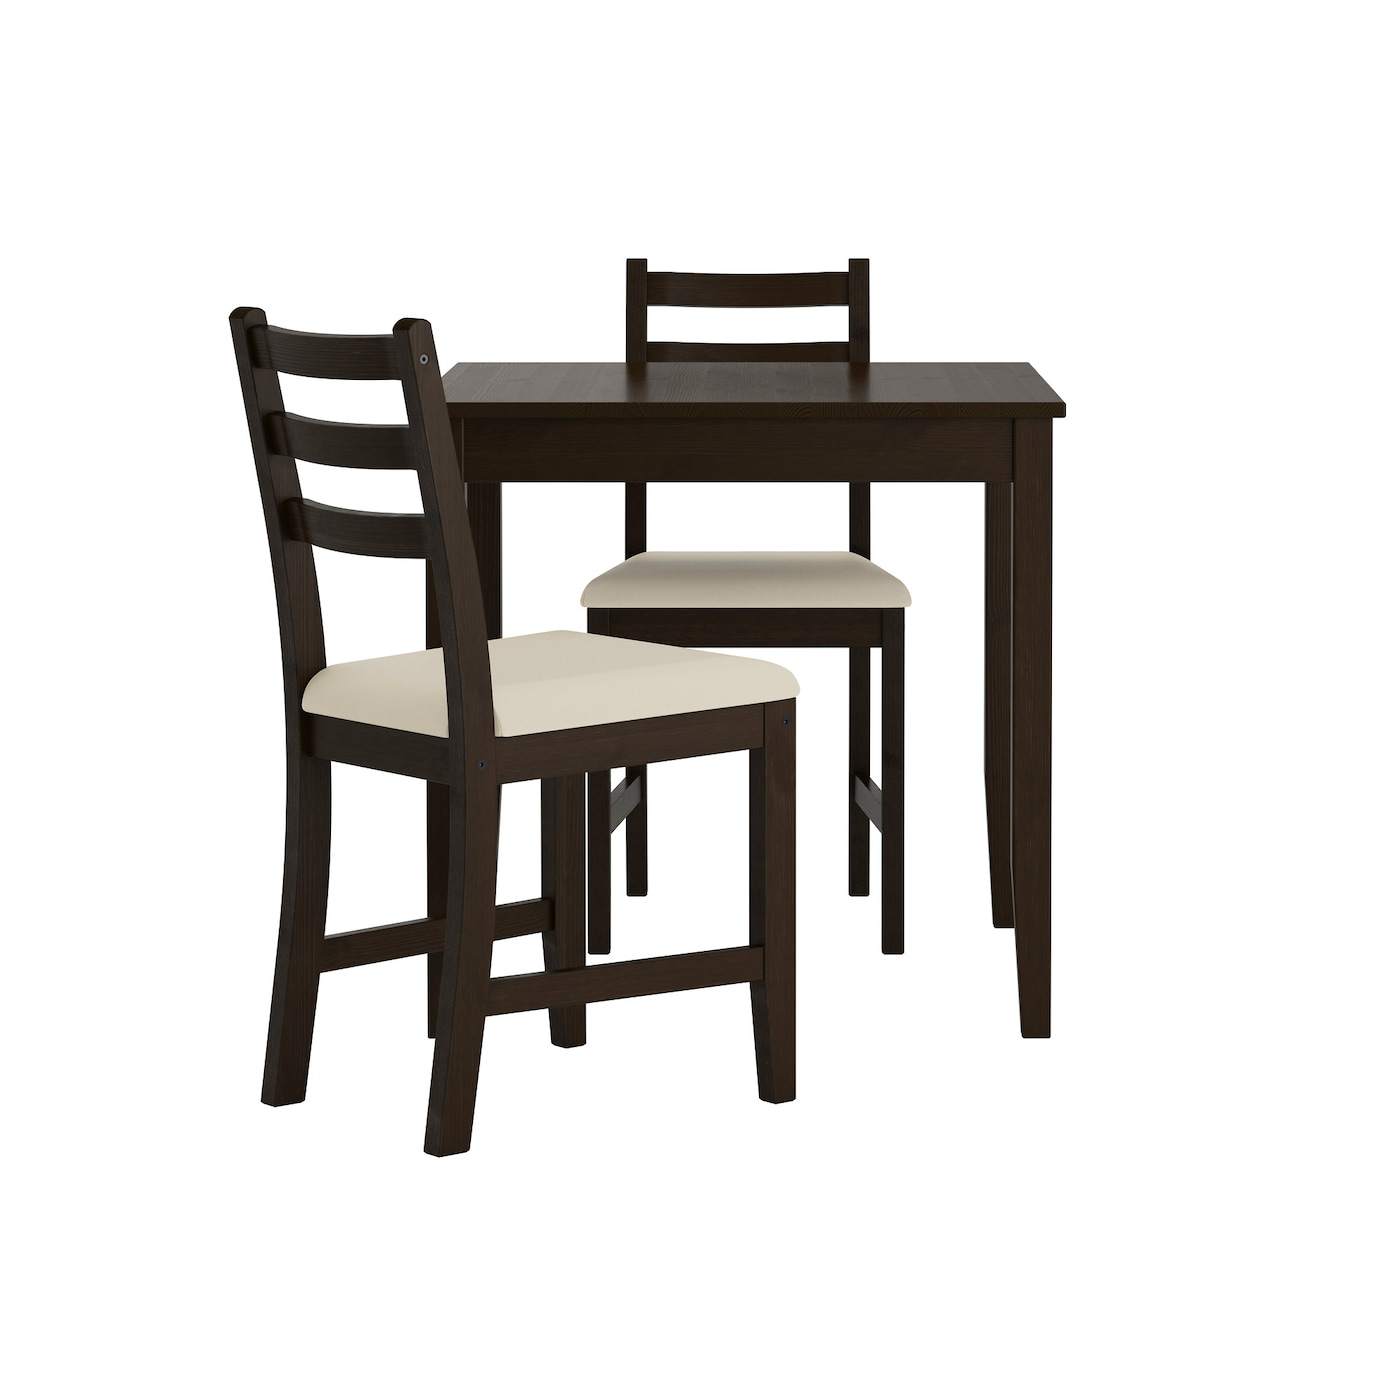 garden table and chairs for sale in leeds. ikea lerhamn table and 2 chairs garden for sale in leeds